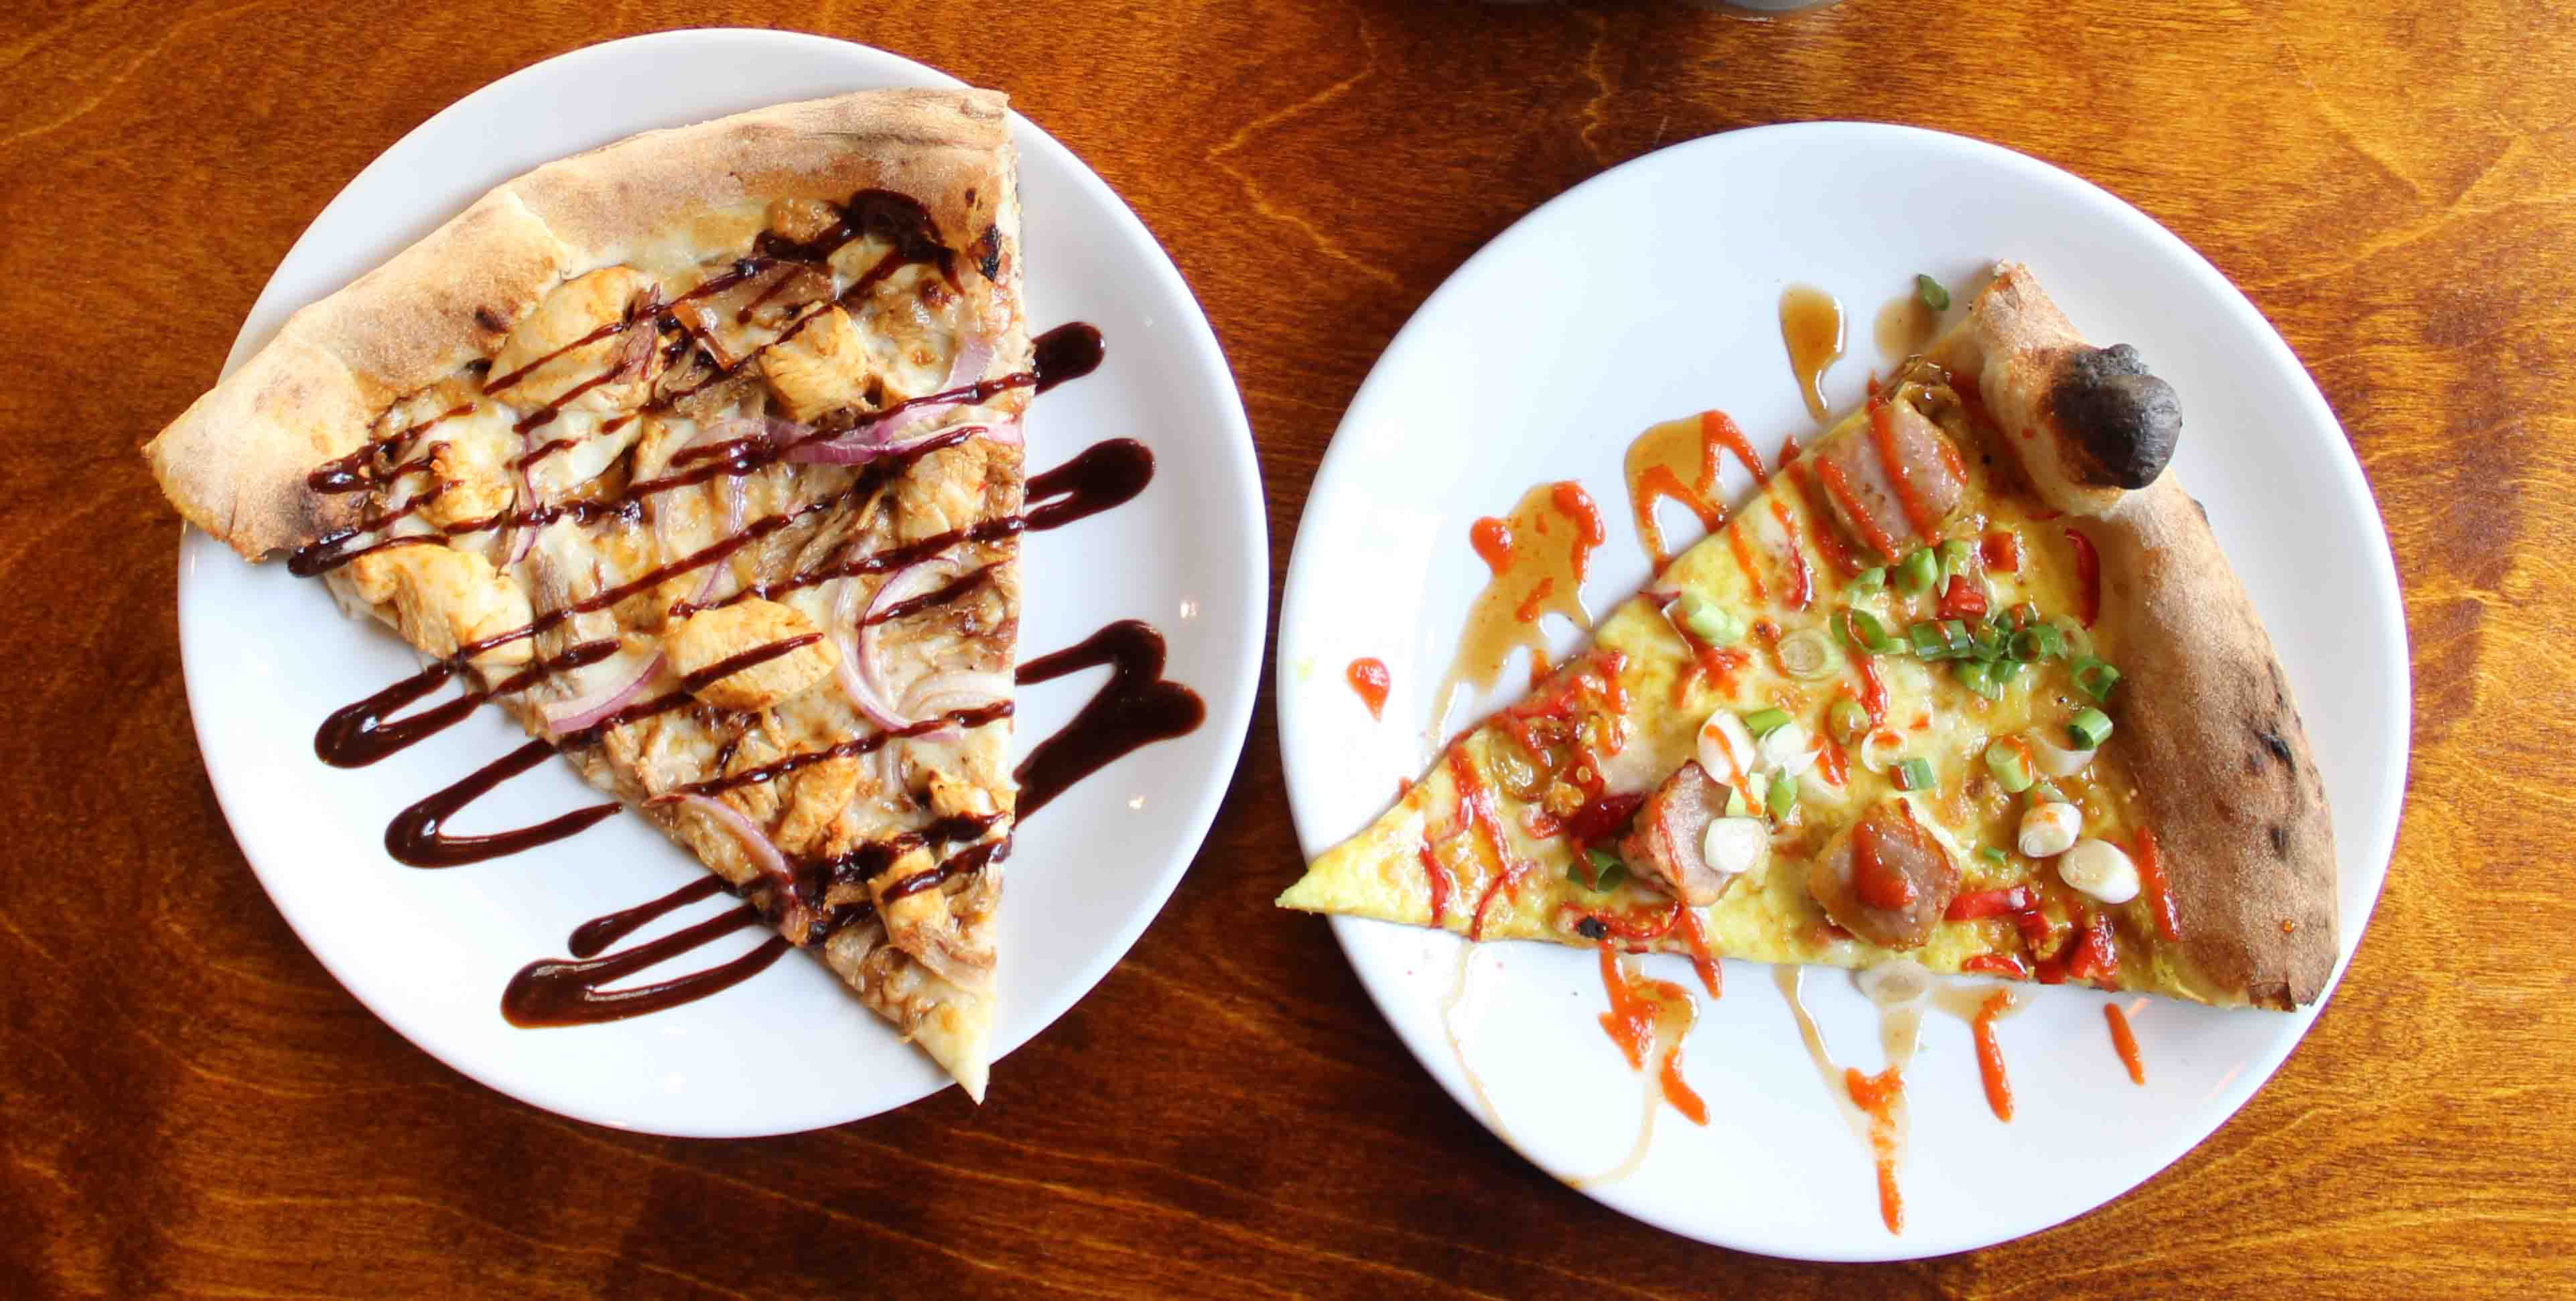 Two white plates each topped with a slice of pizza and drizzled with sauce at Santa Maluco, Liverpool